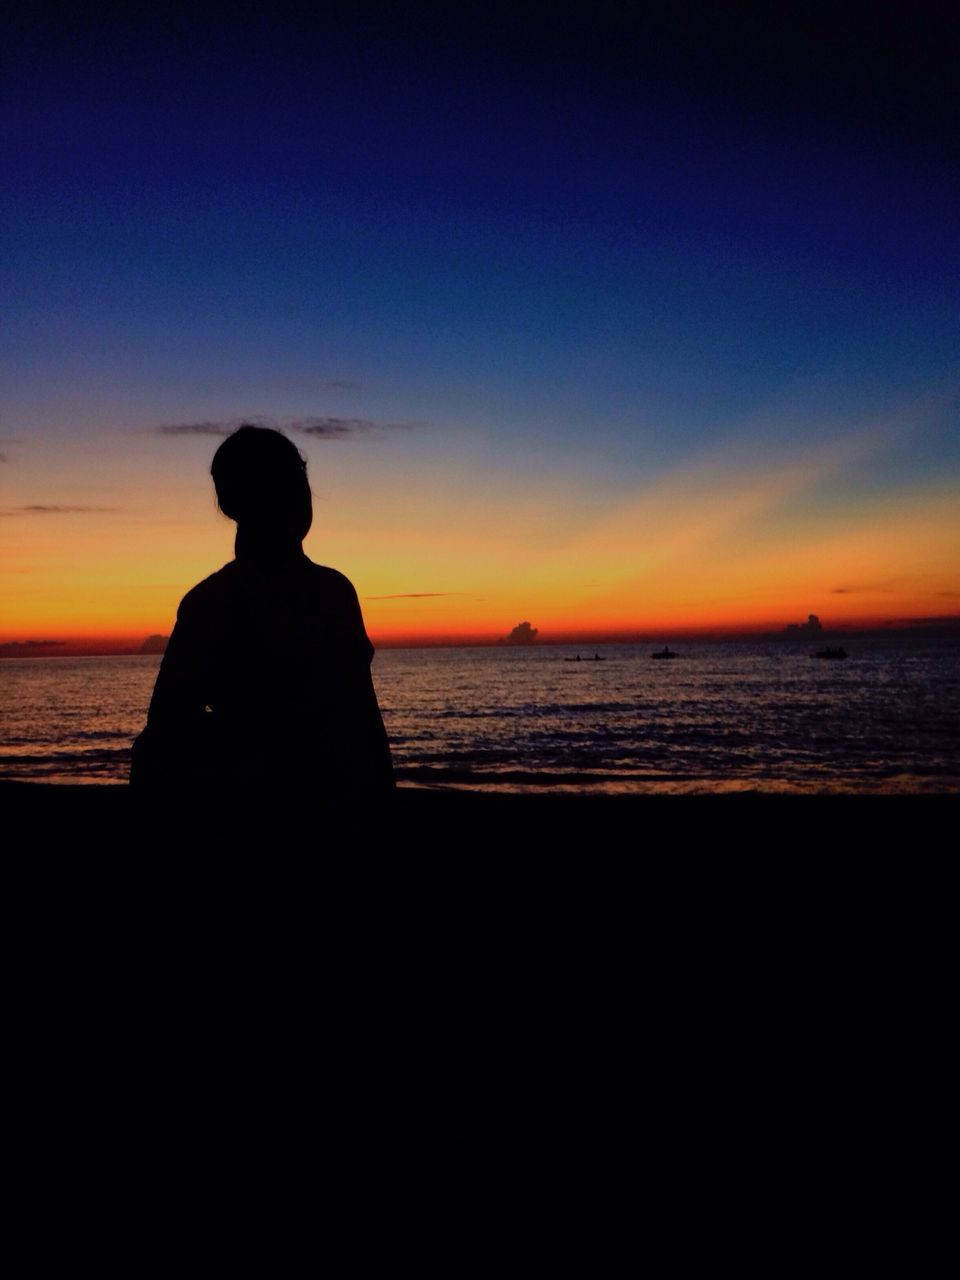 silhouette, sunset, sea, beach, horizon over water, scenics, water, beauty in nature, nature, one person, tranquility, tranquil scene, rear view, sky, real people, outdoors, clear sky, standing, wave, day, people